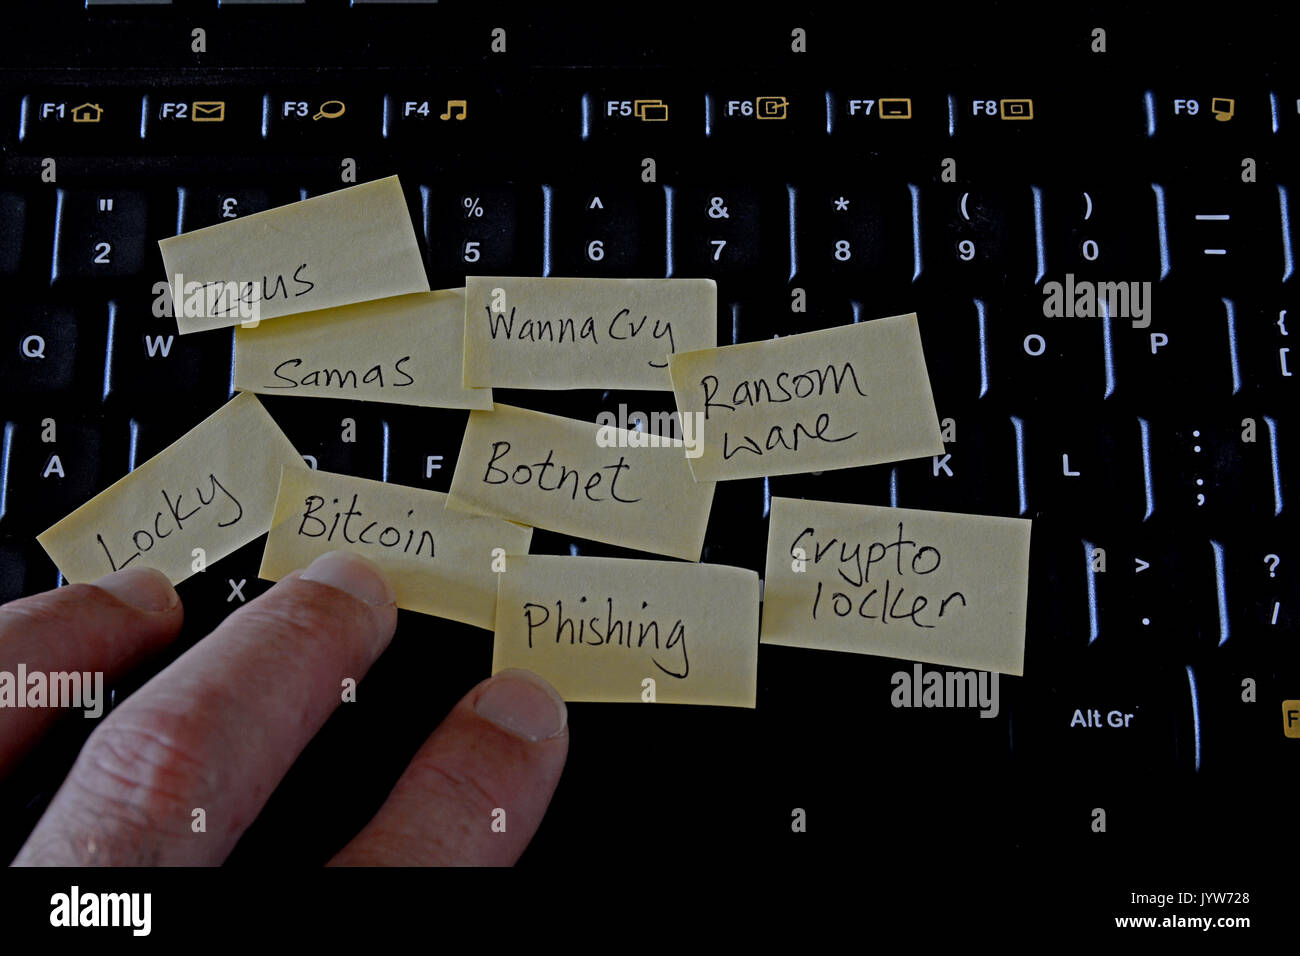 Computer keyboard with post it notes of computer threats / ransomware stuck on. With mans hand touching keyboard. - Stock Image